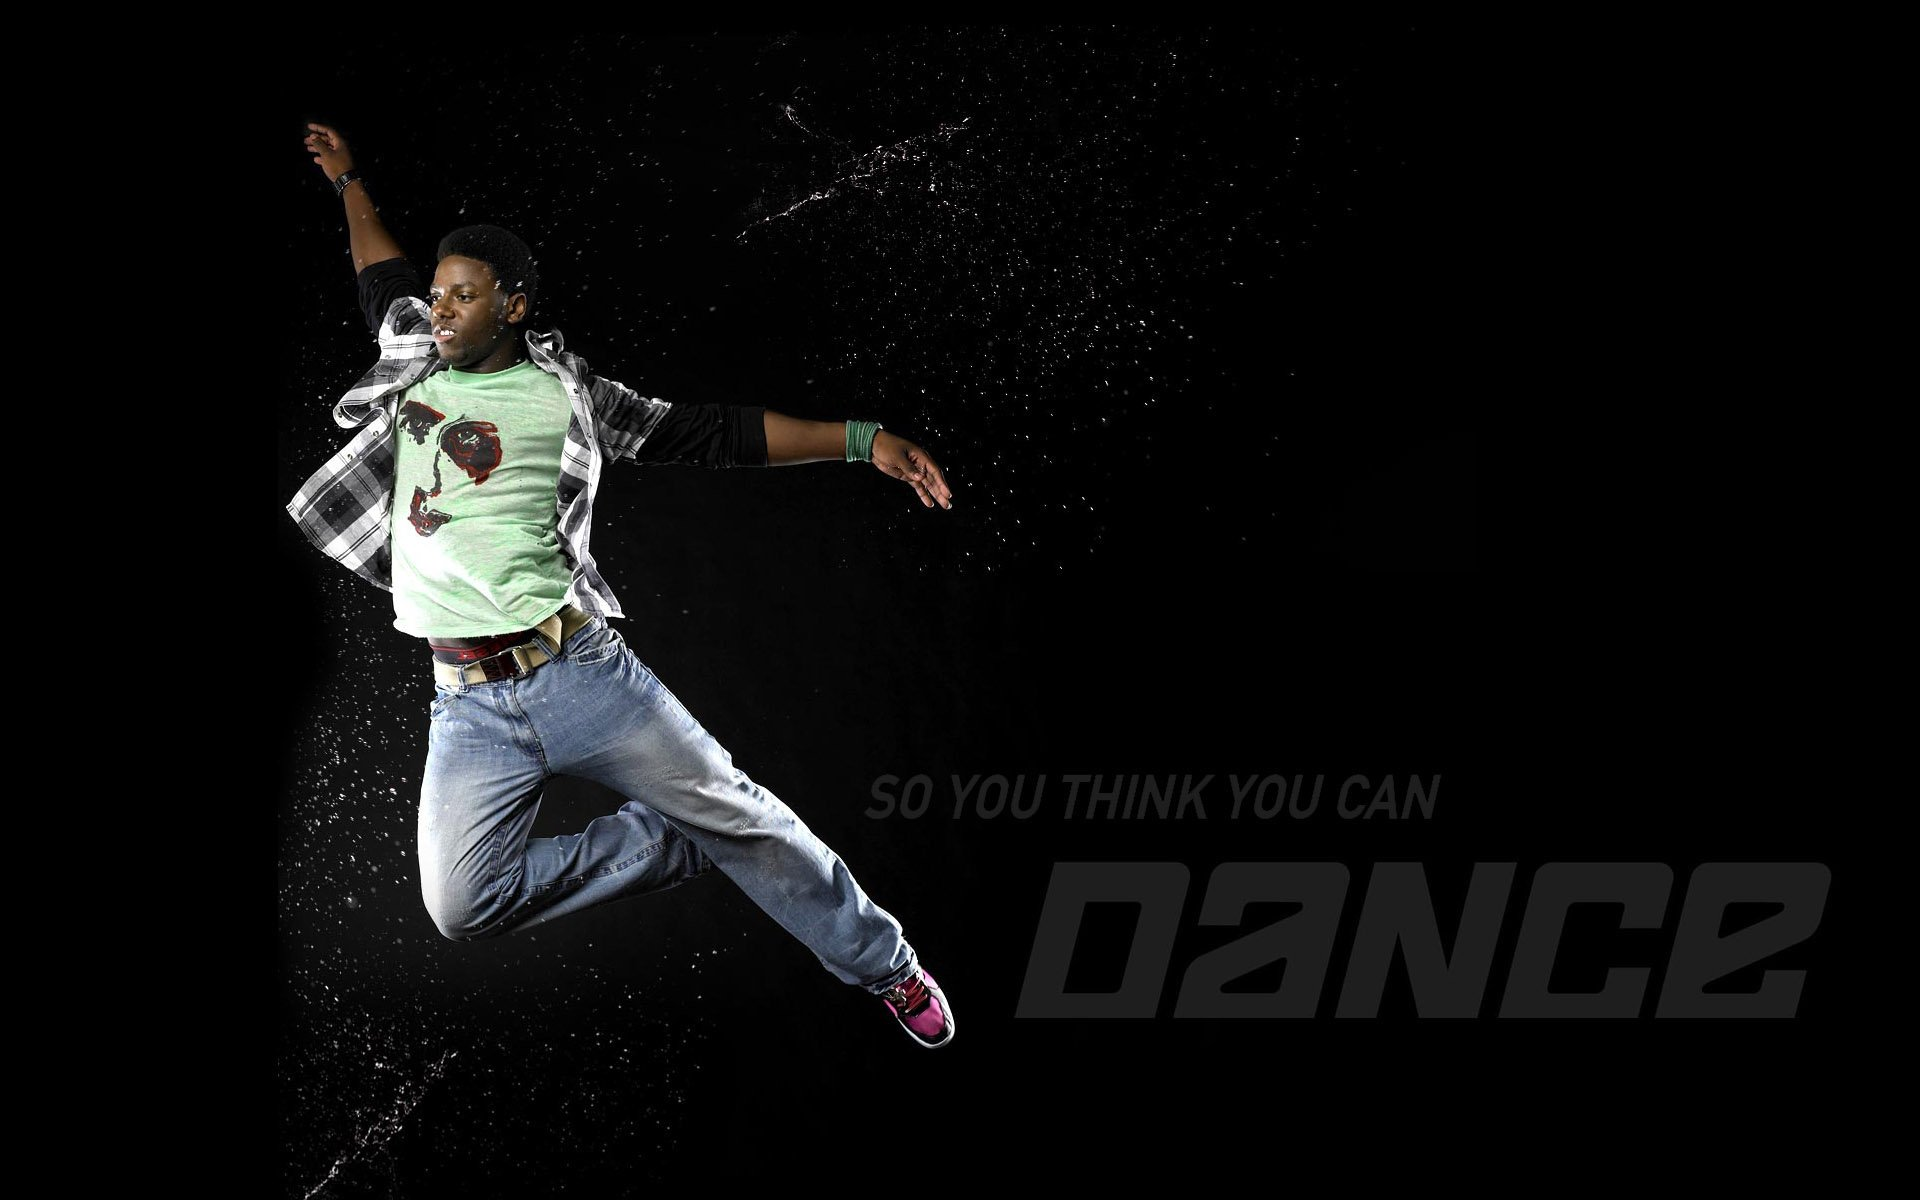 So You Think You Can Dance Hd Wallpaper Background Image